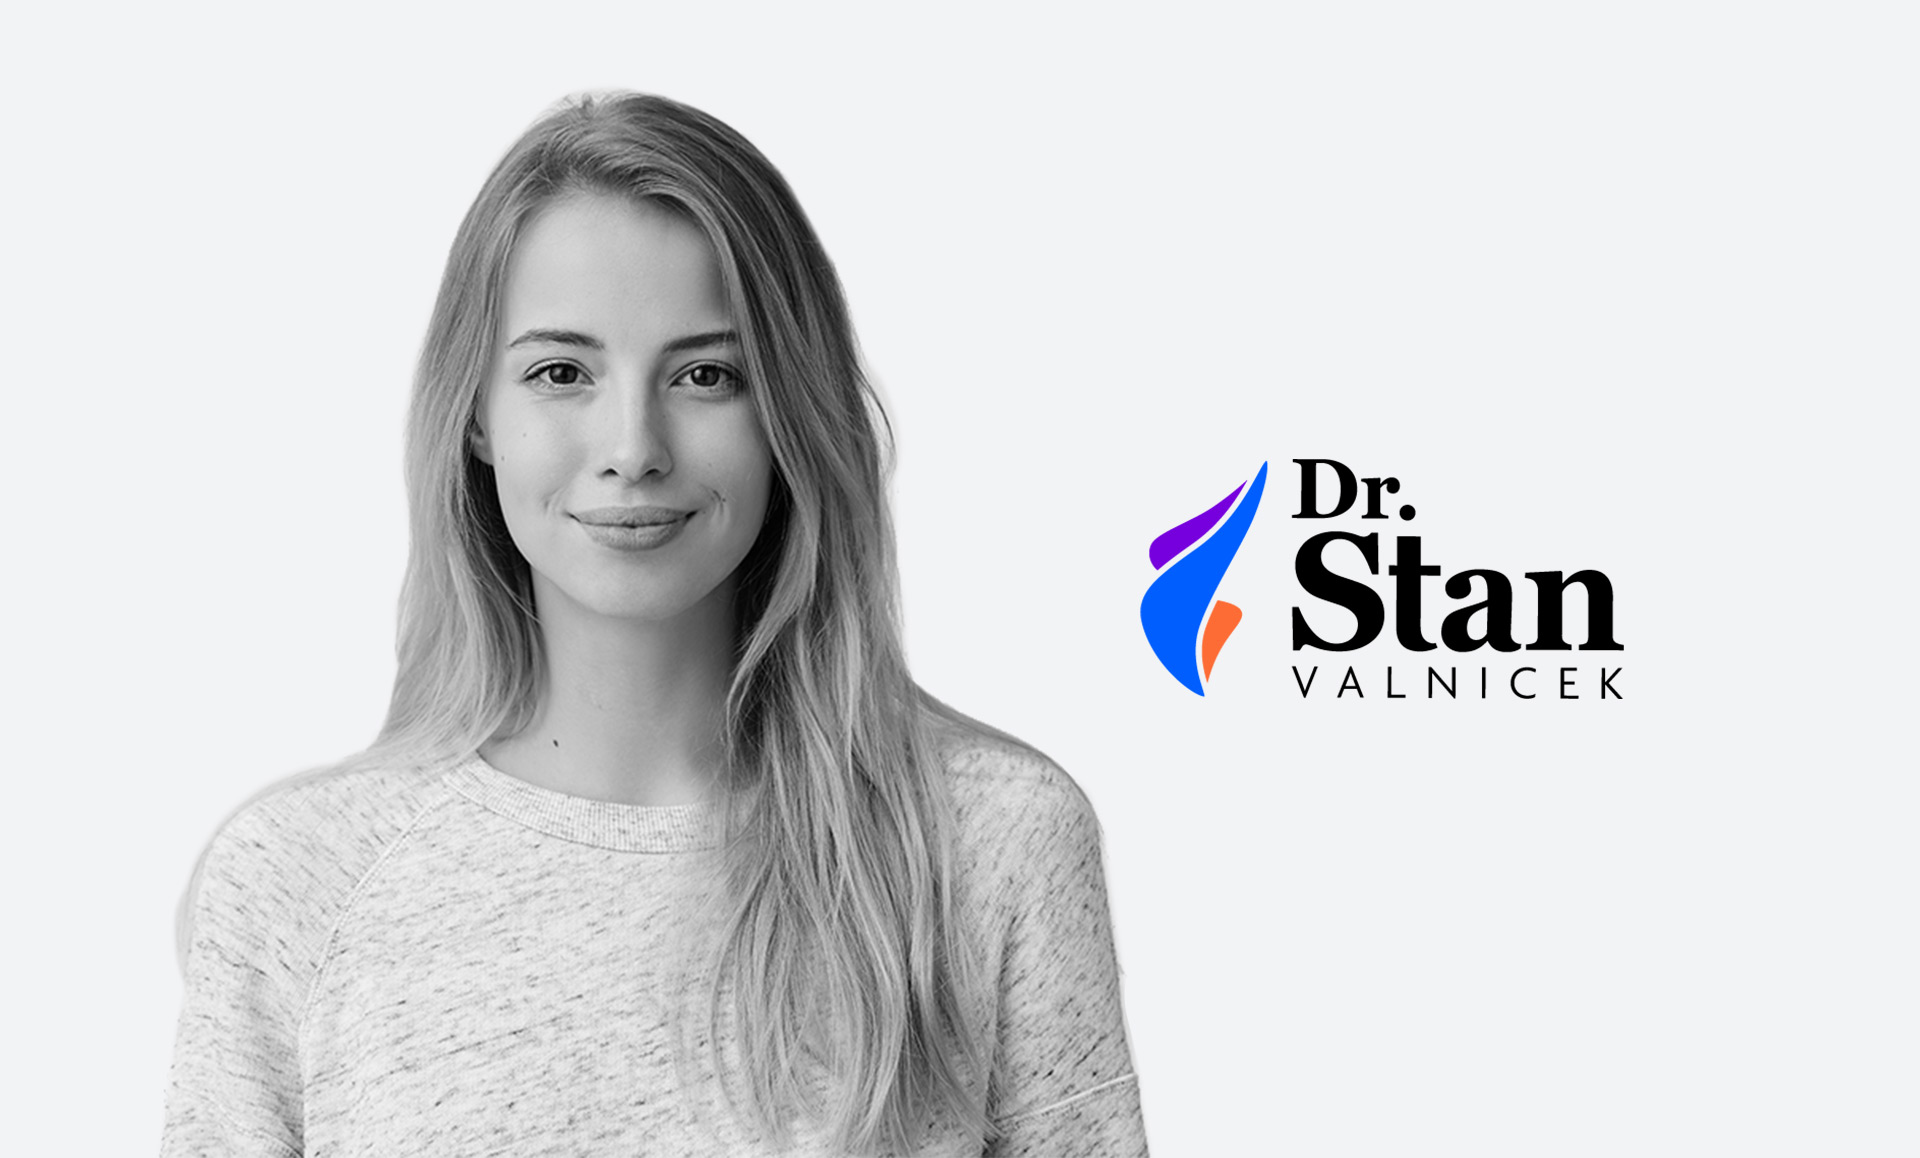 Read more on Dr. Stan